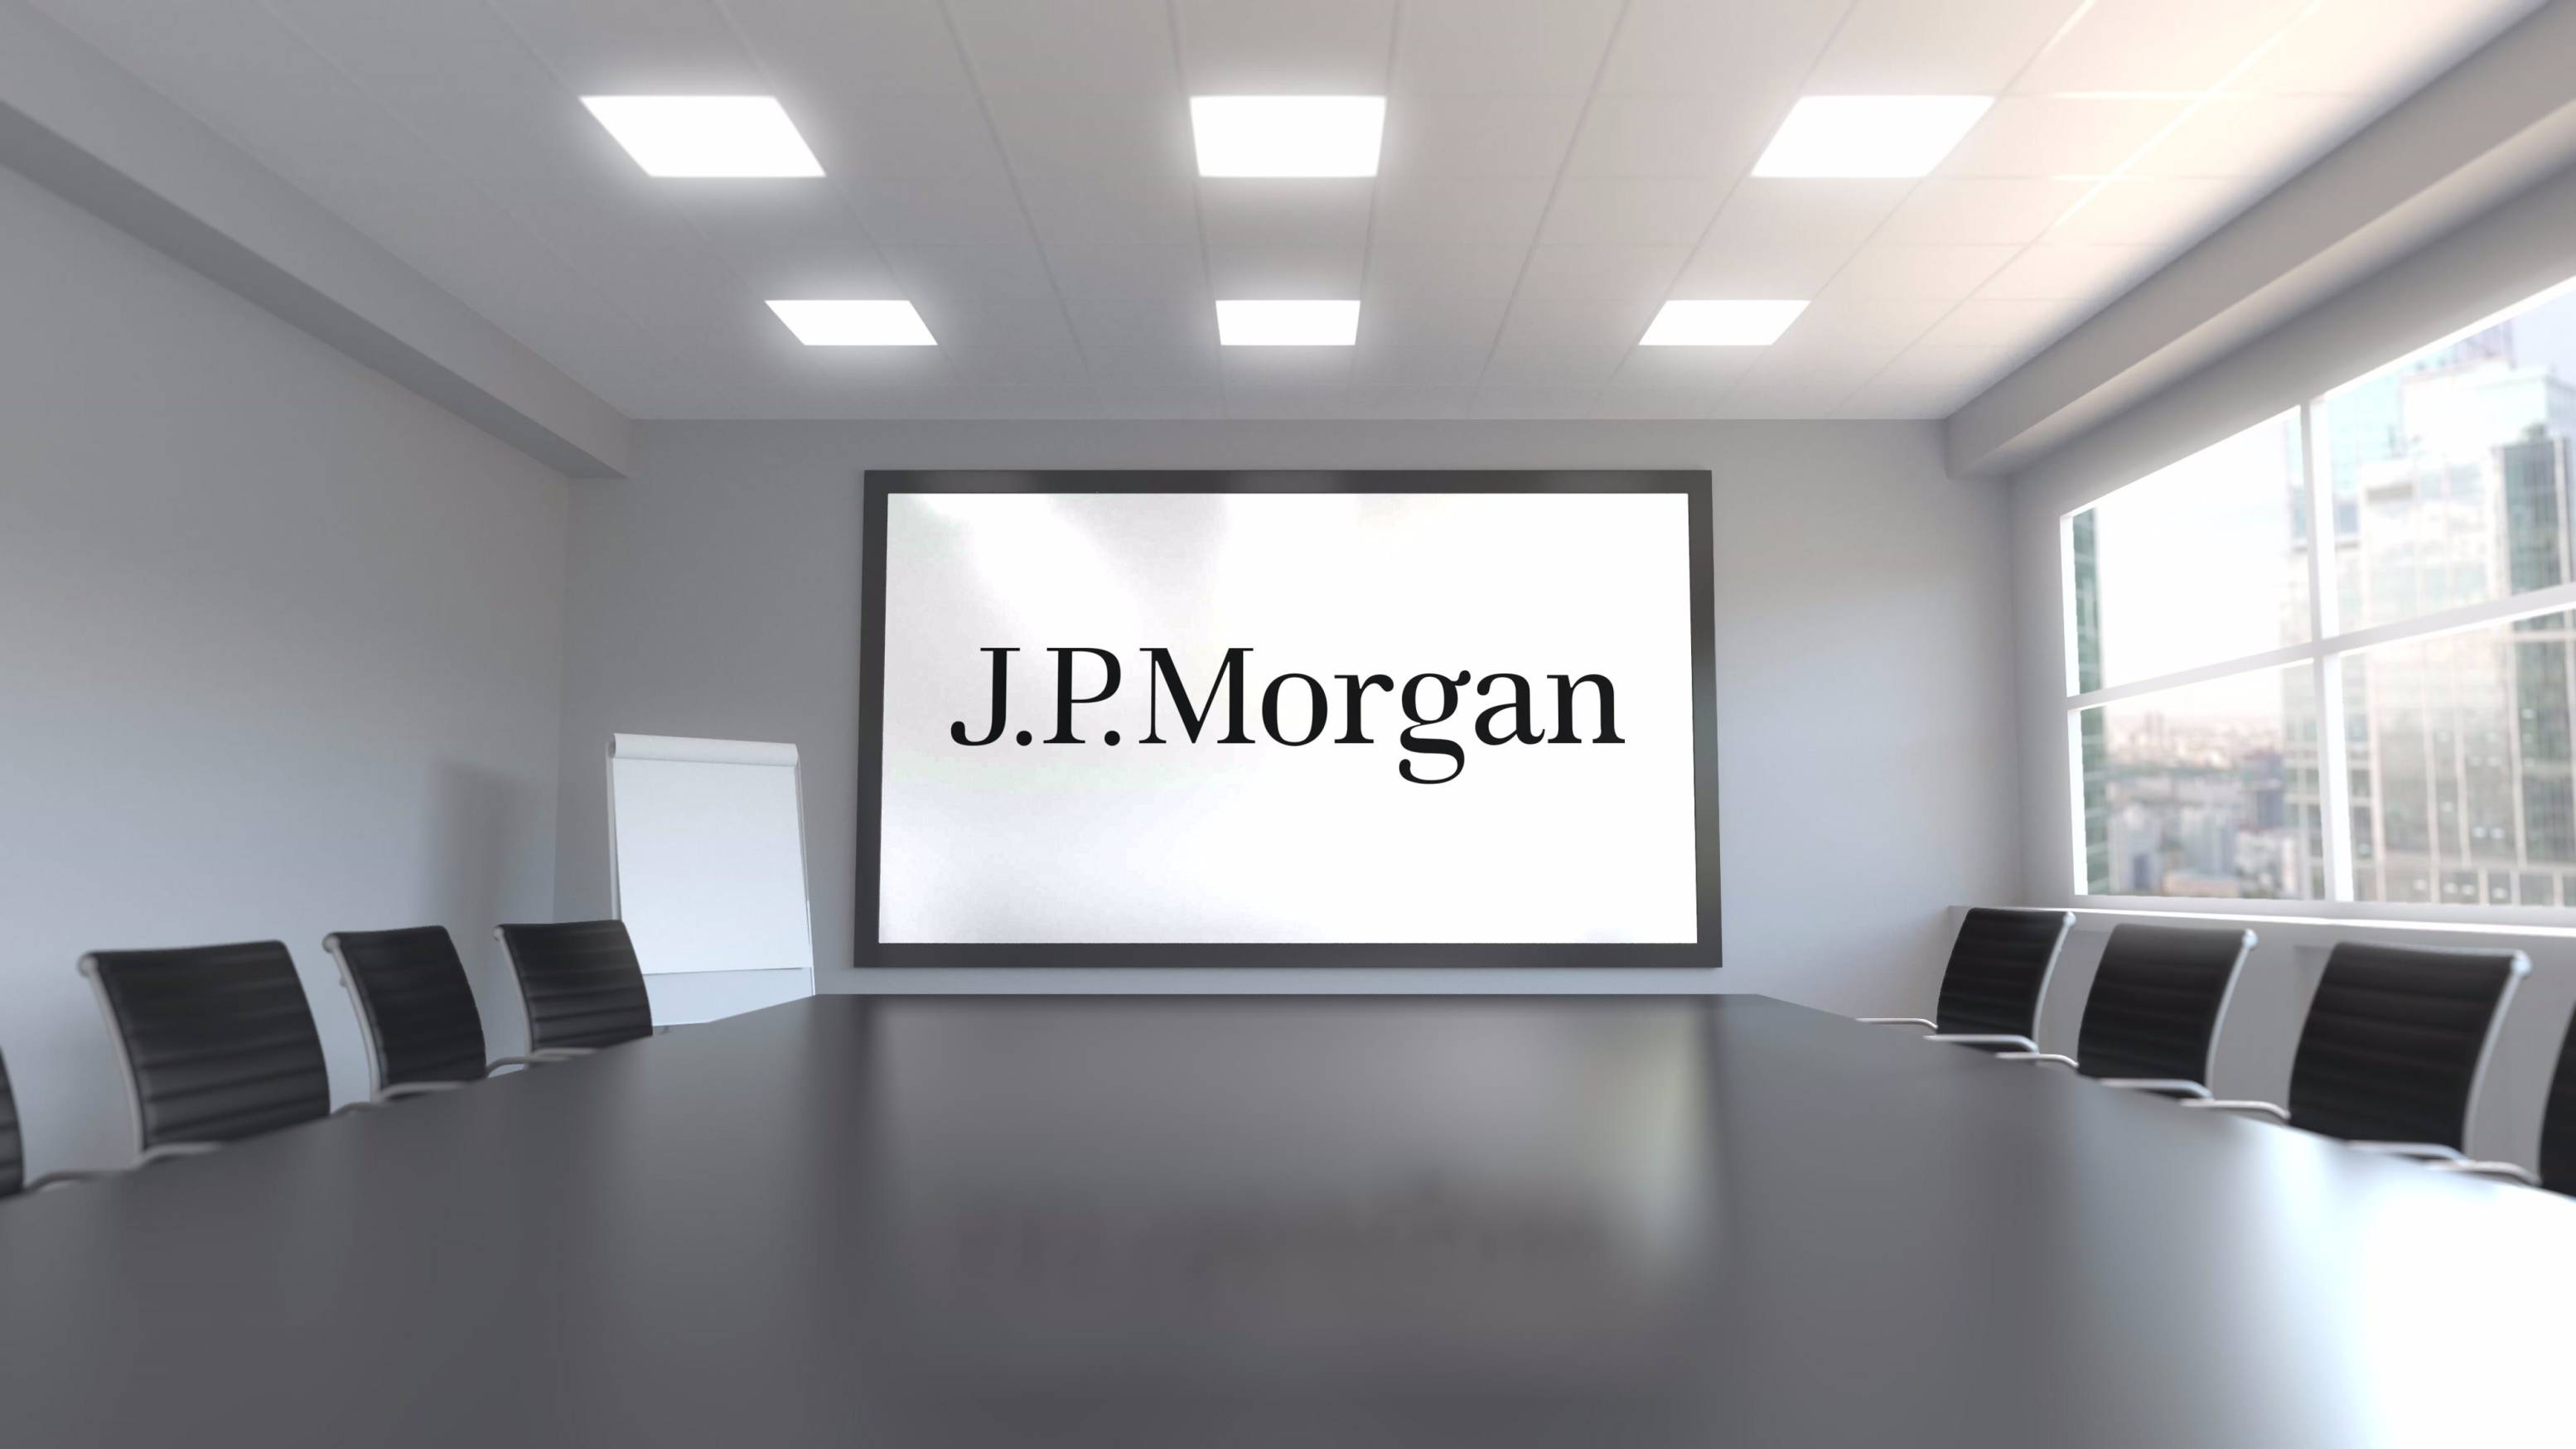 J.P Morgan set to release earnings on Tuesday – here's everything you need to know